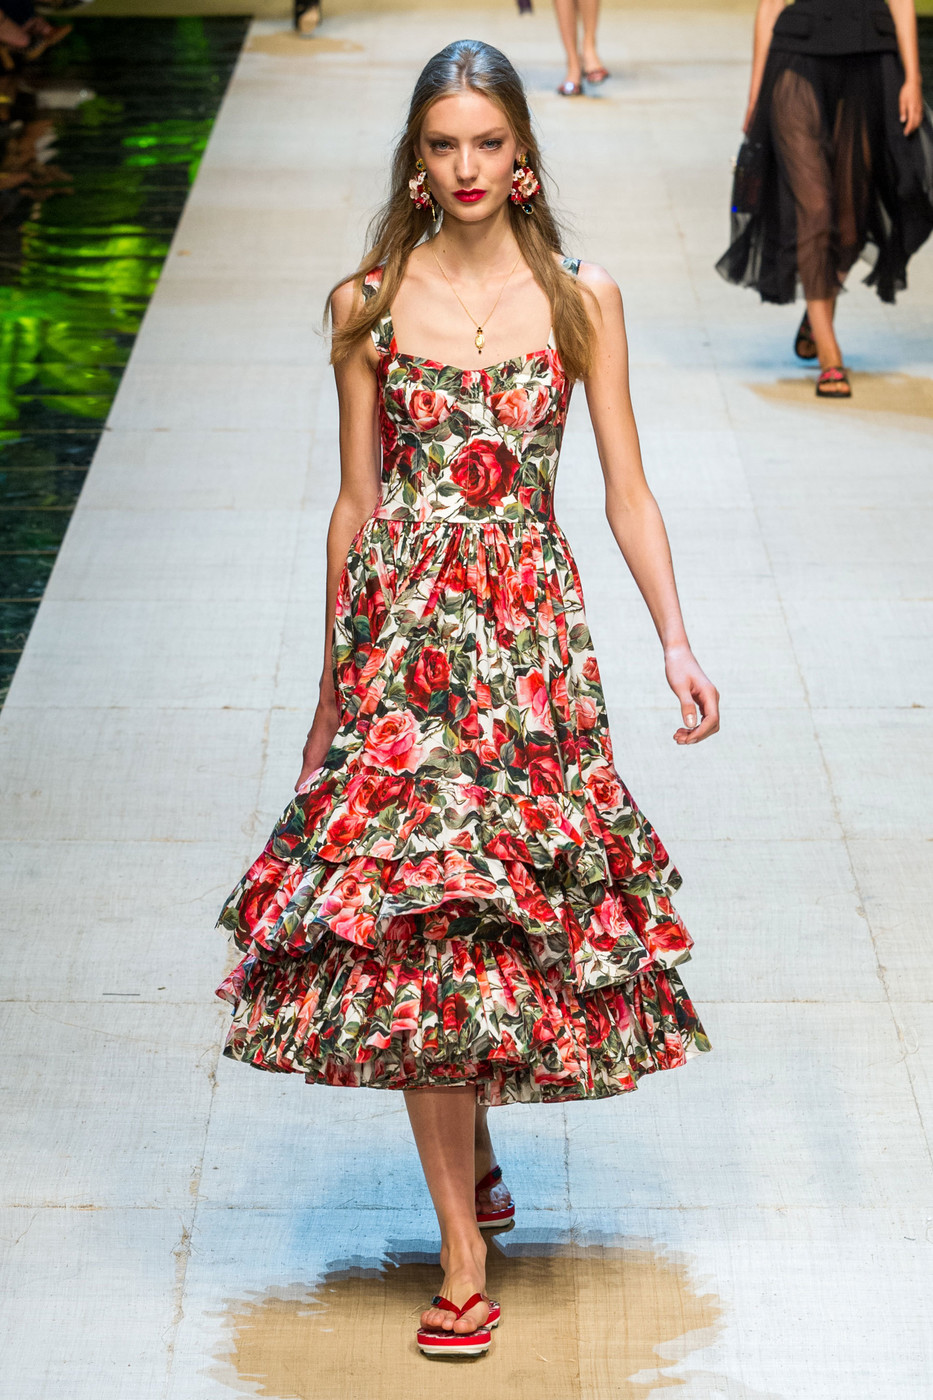 2017 fashion over 50 - Dolce Amp Gabbana Spring 2017 Every Must See Dress From